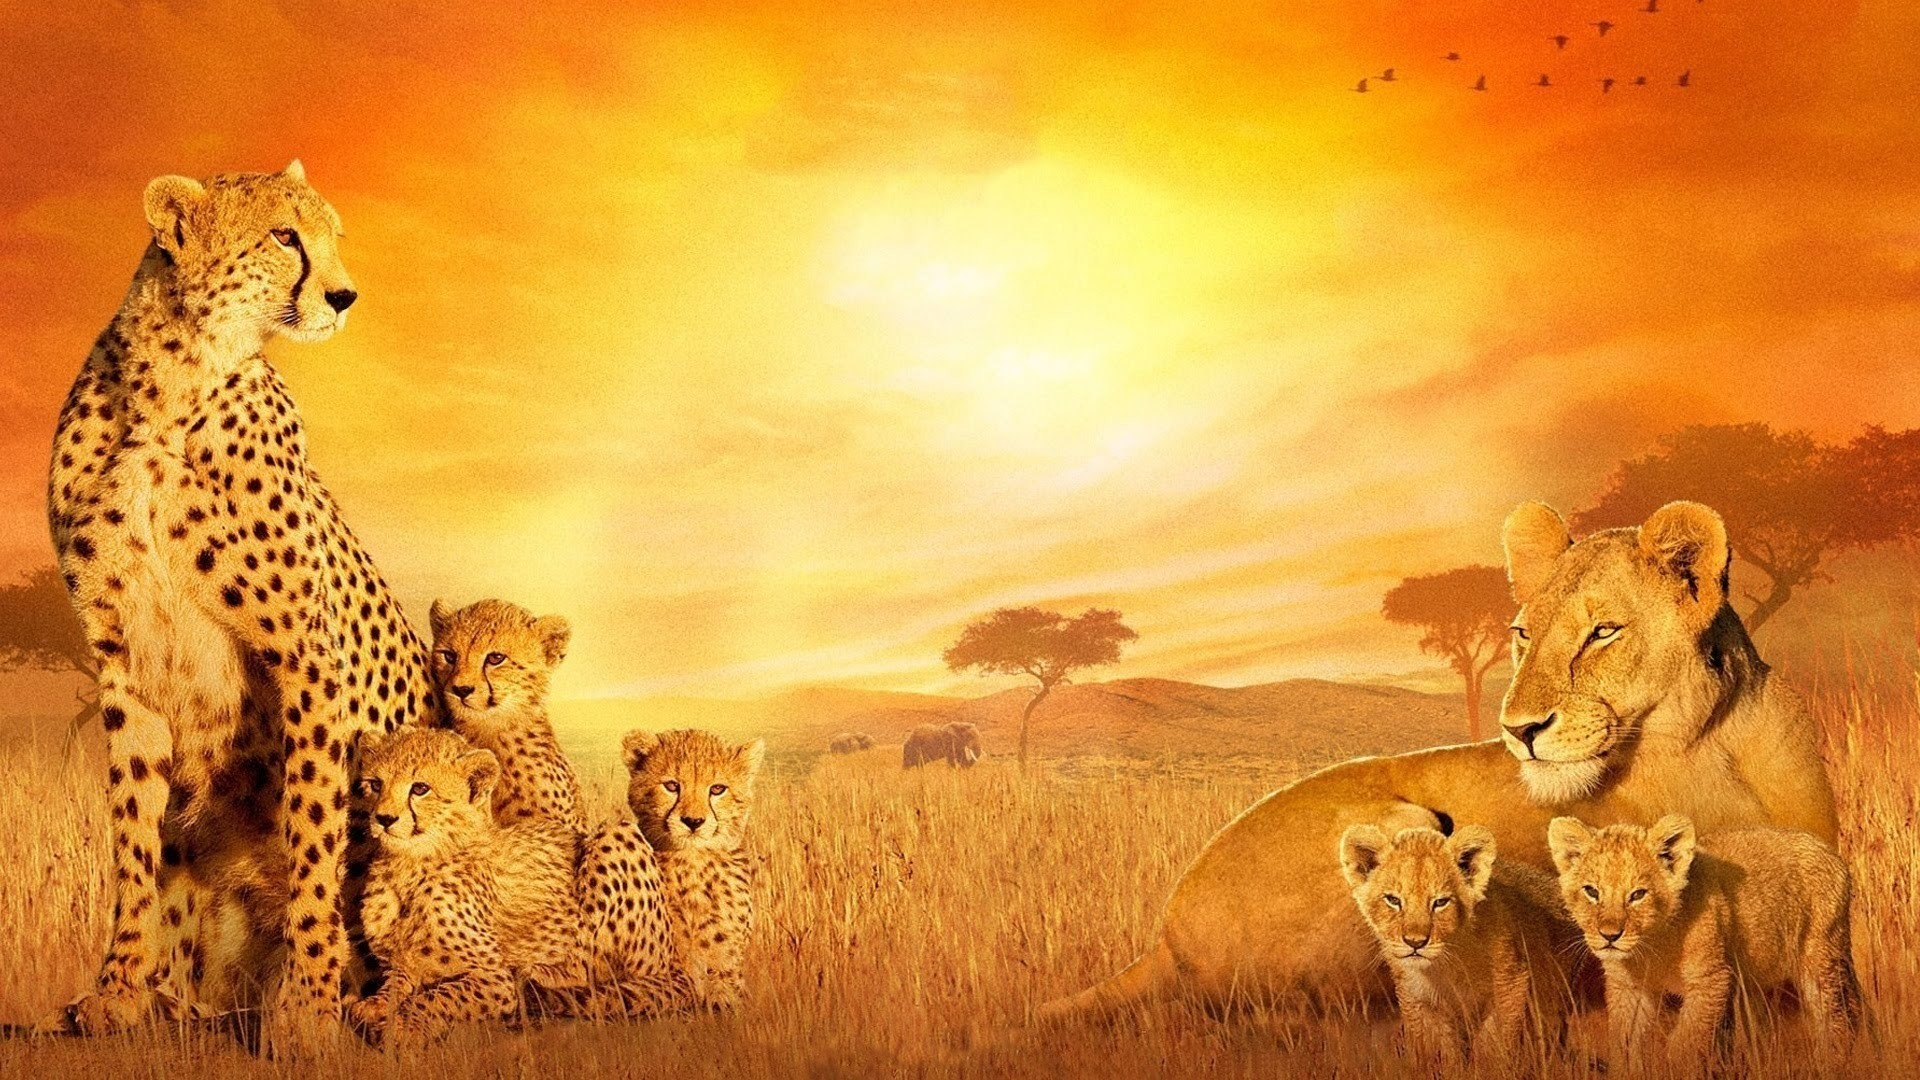 1920x1080 African Background 183 ① Download Free Stunning Wallpapers